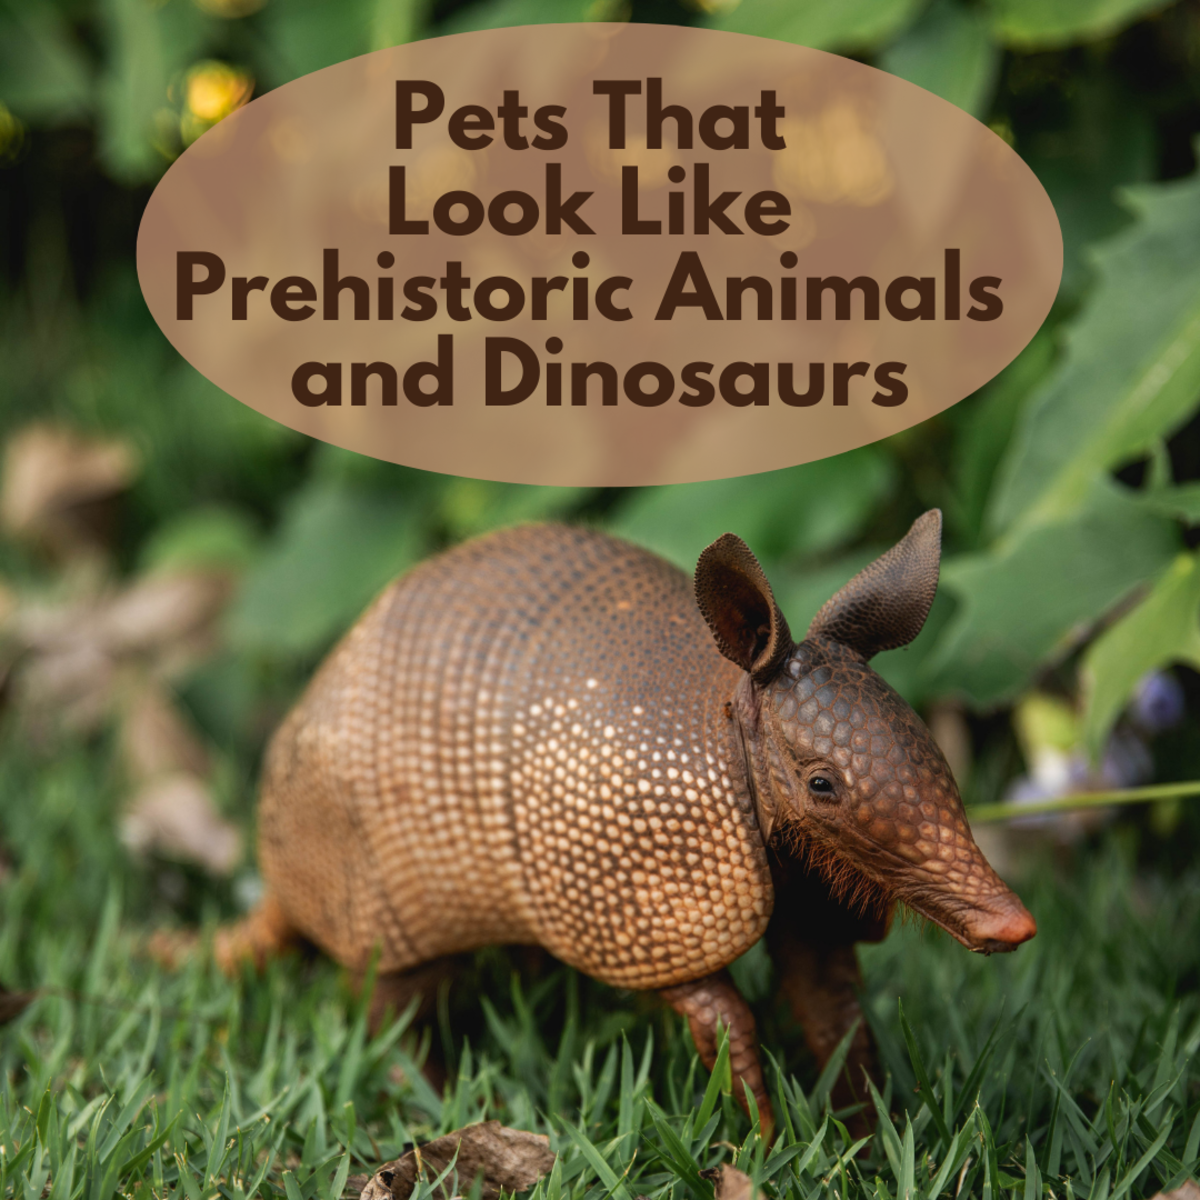 15 Pets You Can Own That Look Like Dinosaurs and Prehistoric Animals